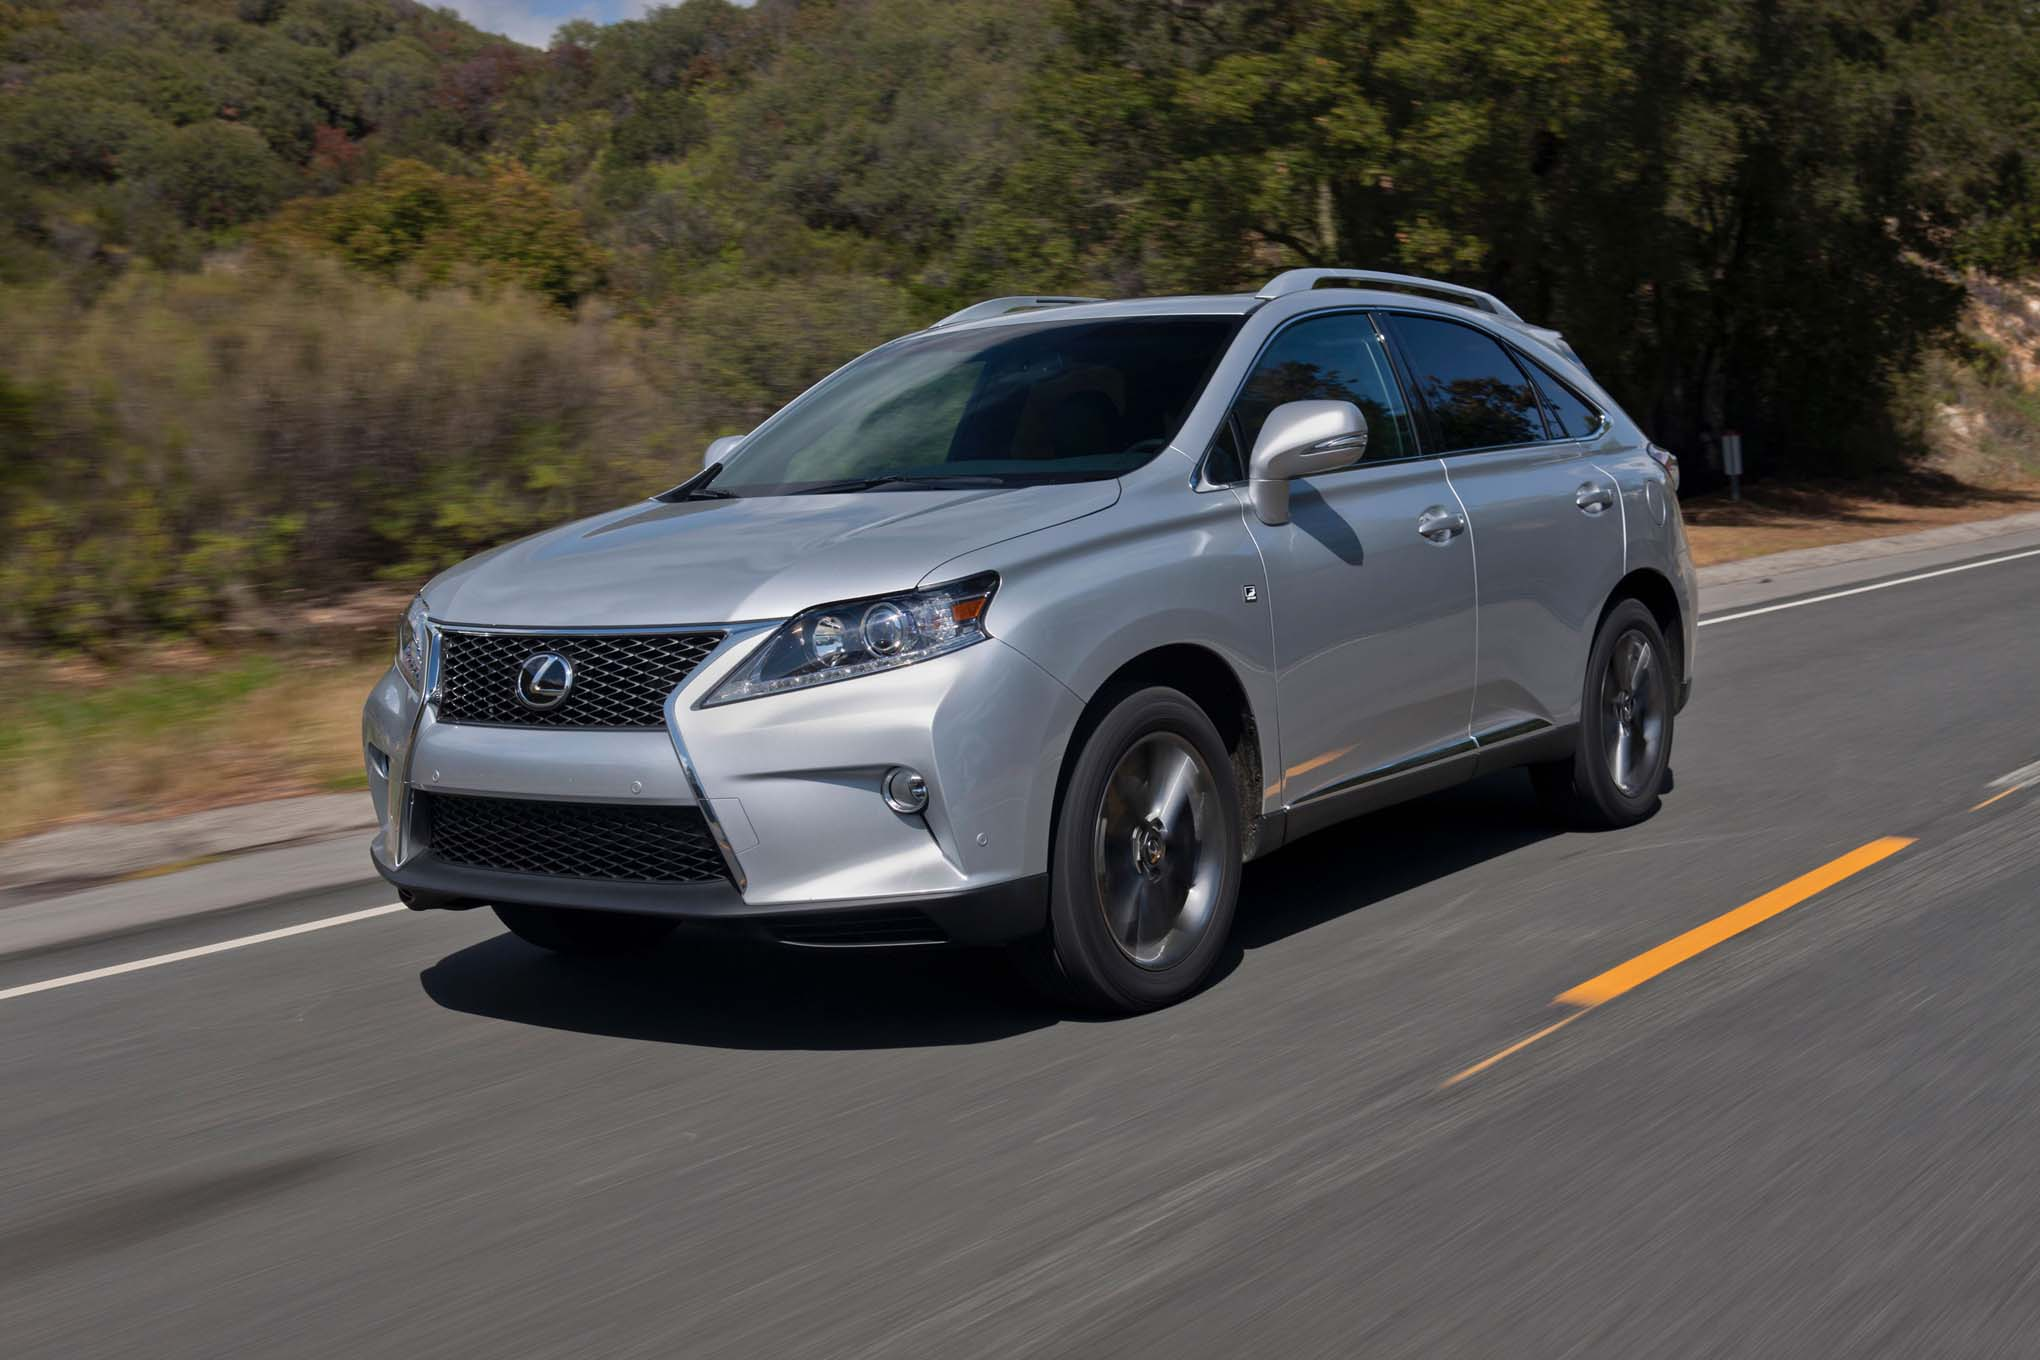 2015 lexus rx350 and rx450h updated - automobile magazine